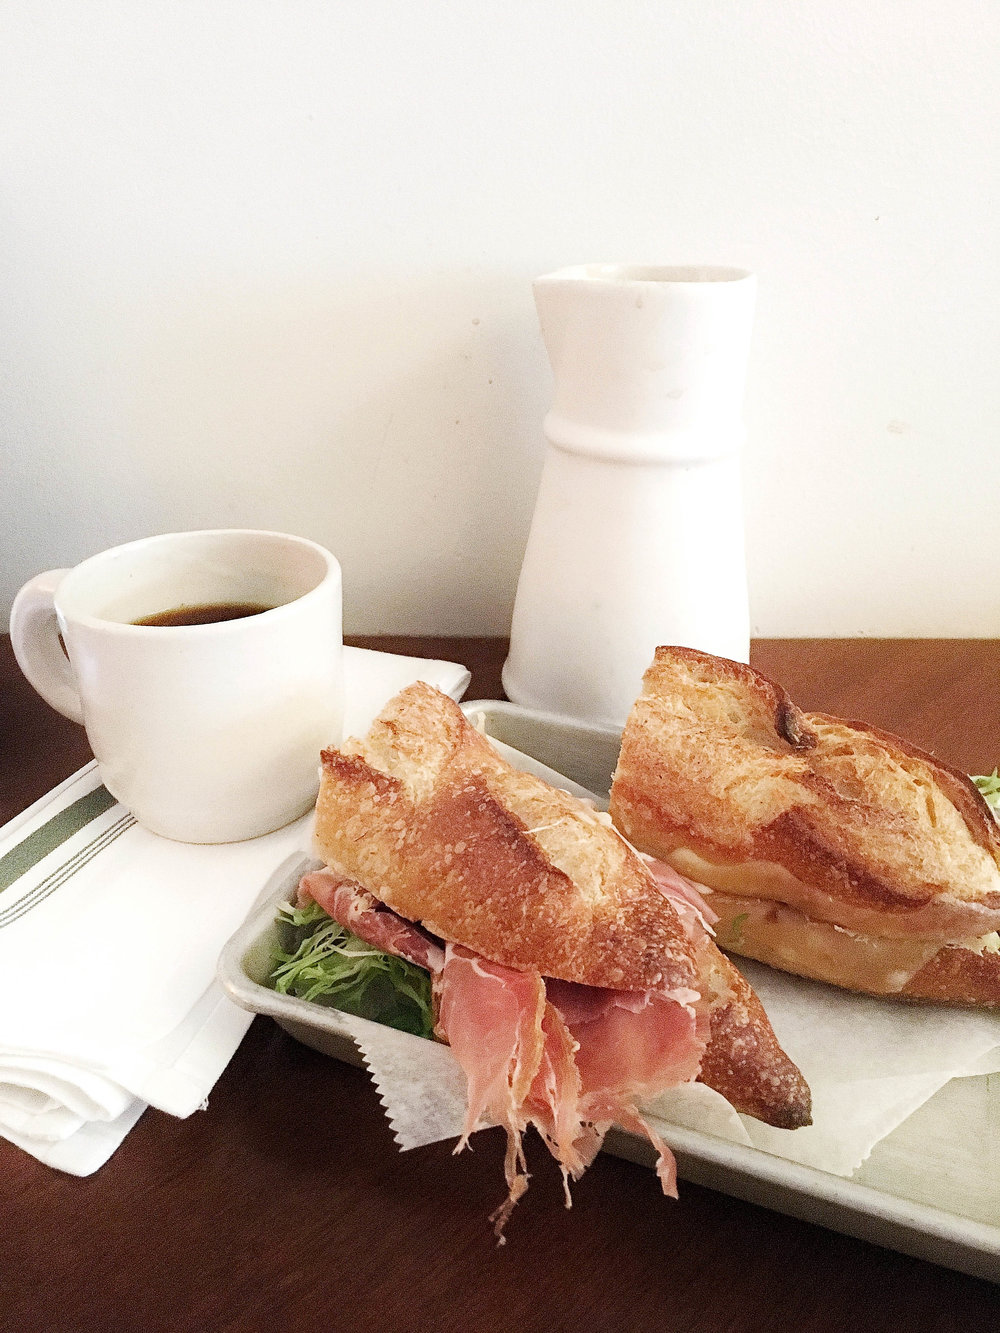 Jamon y queso & coffee is my kinda breakfast